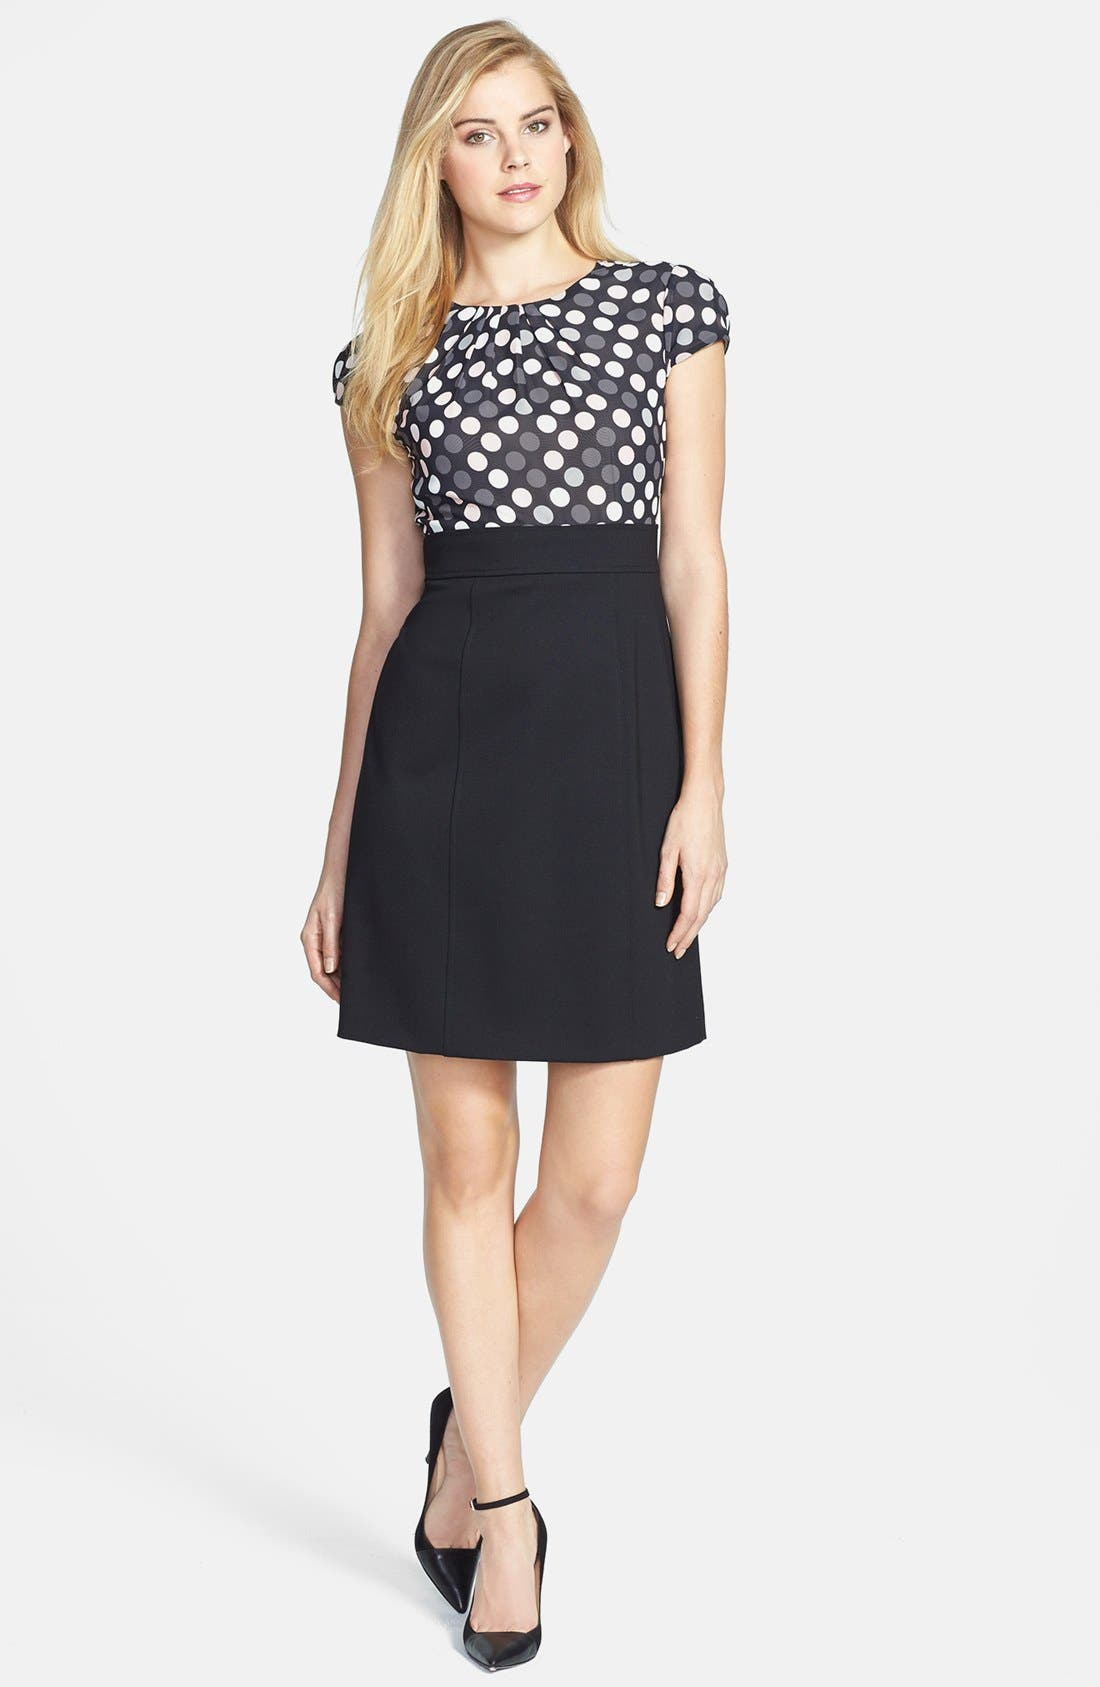 Alternate Image 1 Selected - Tahari Polka Dot Chiffon & Crepe Sheath Dress